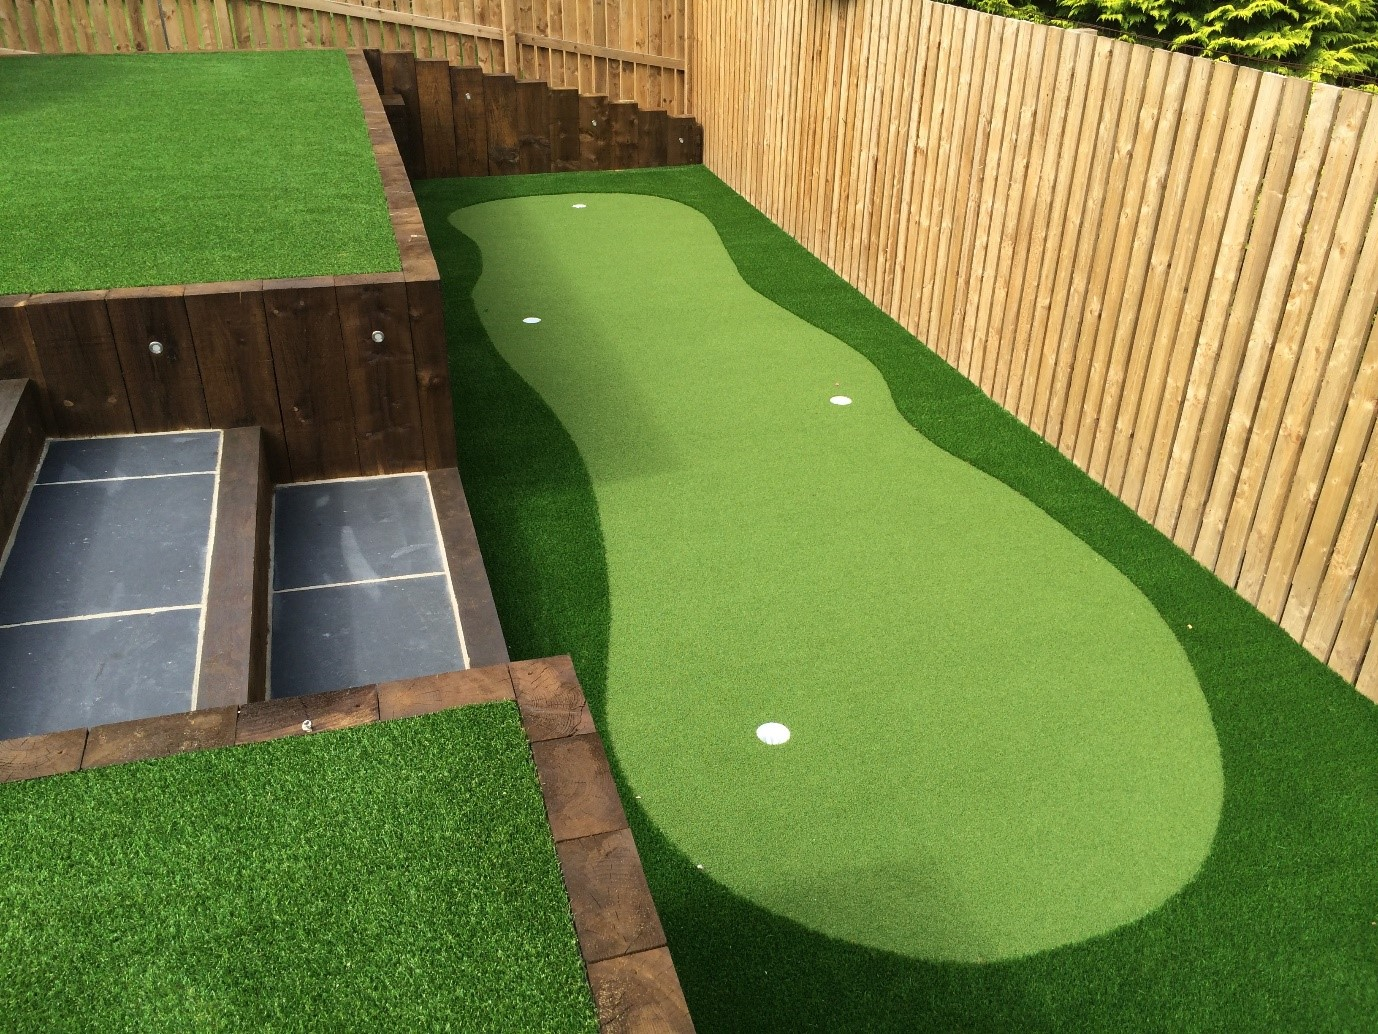 Crazy golf back garden designs golfsupport blog for Back garden designs uk